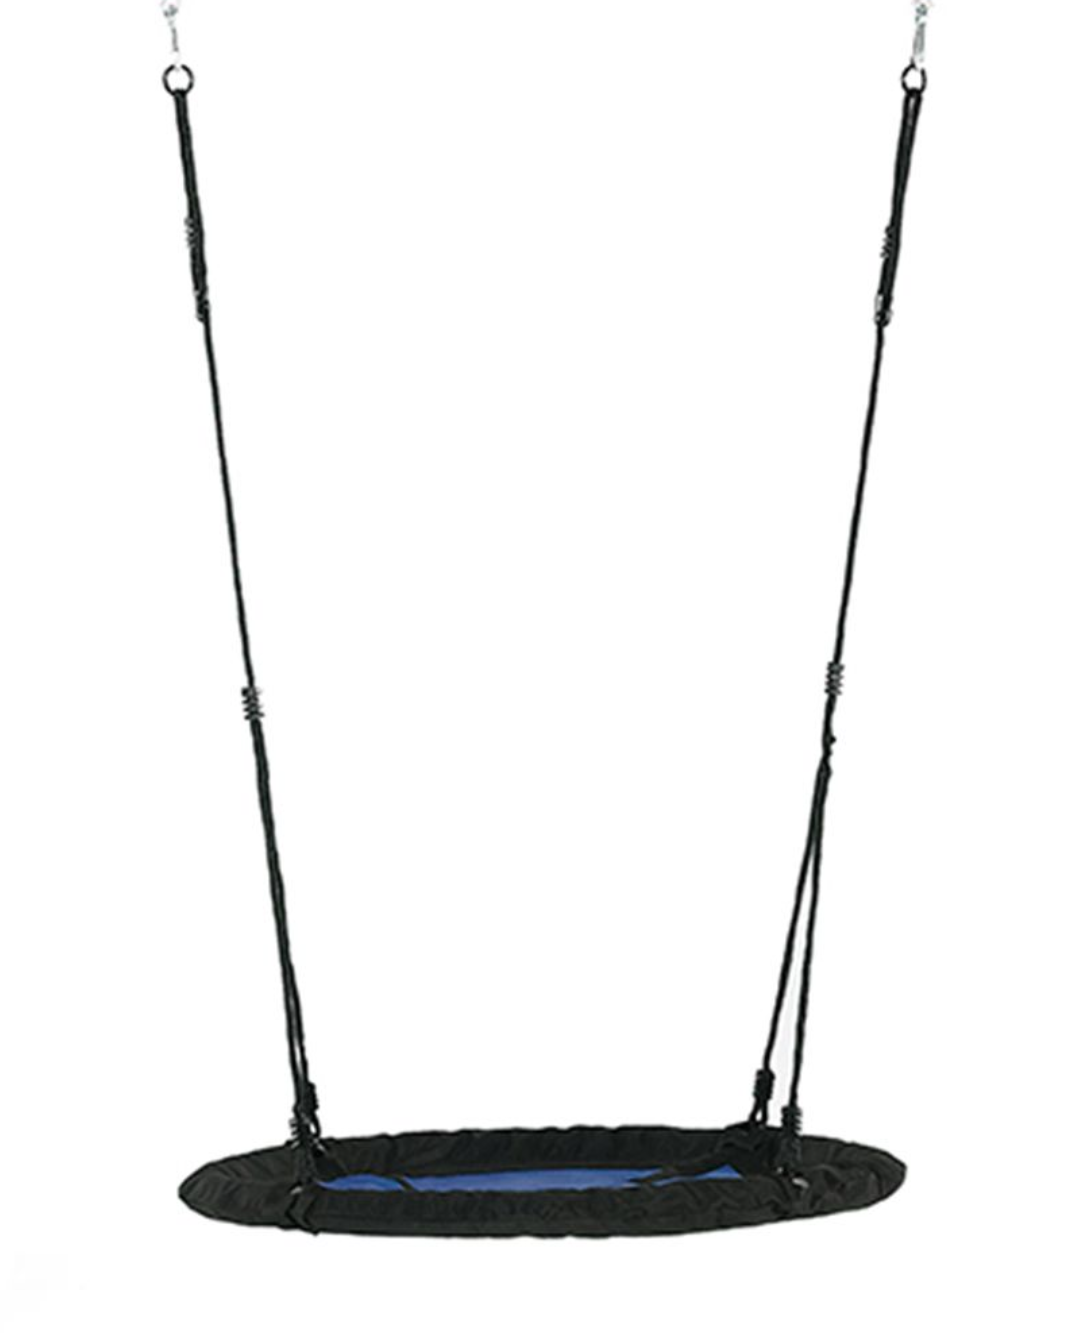 Plum Nest Swing with Teal Hangers